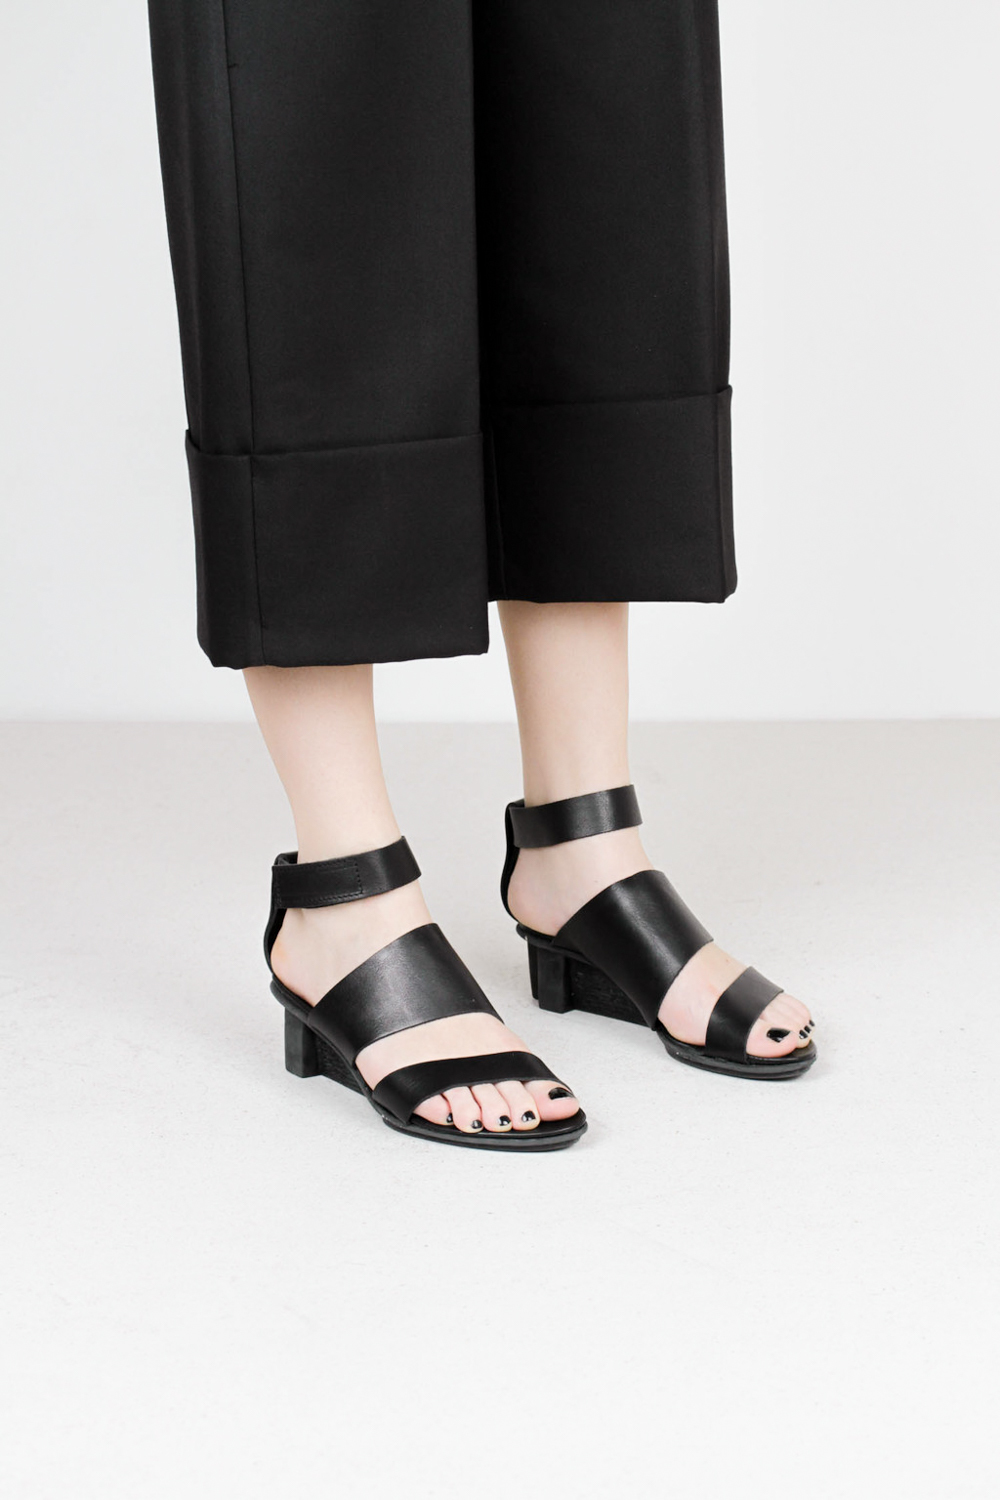 Trippen pulse f waw blk leather sandals